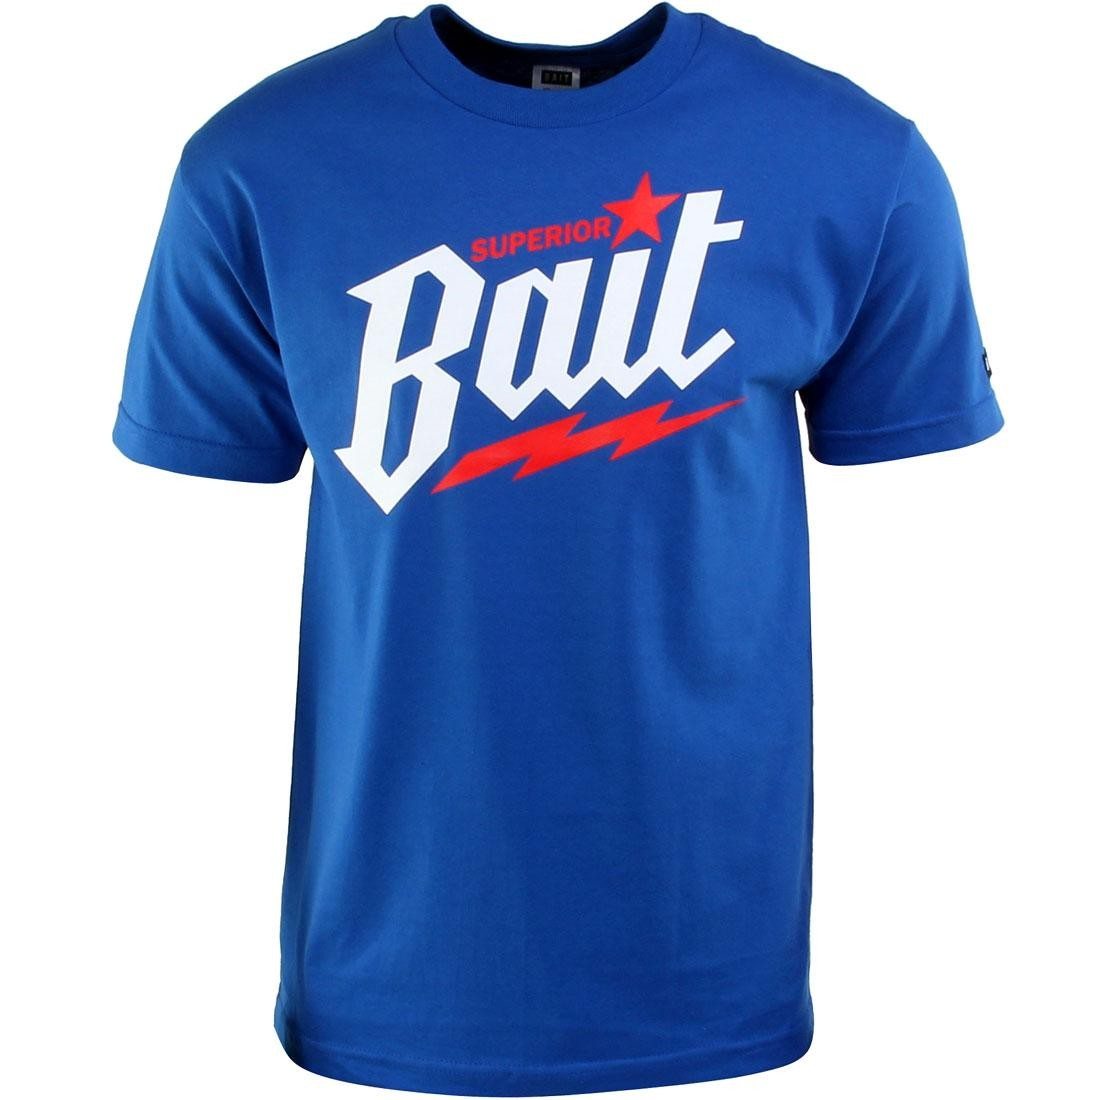 BAIT Superior BAIT Tee (royal blue / white / red)